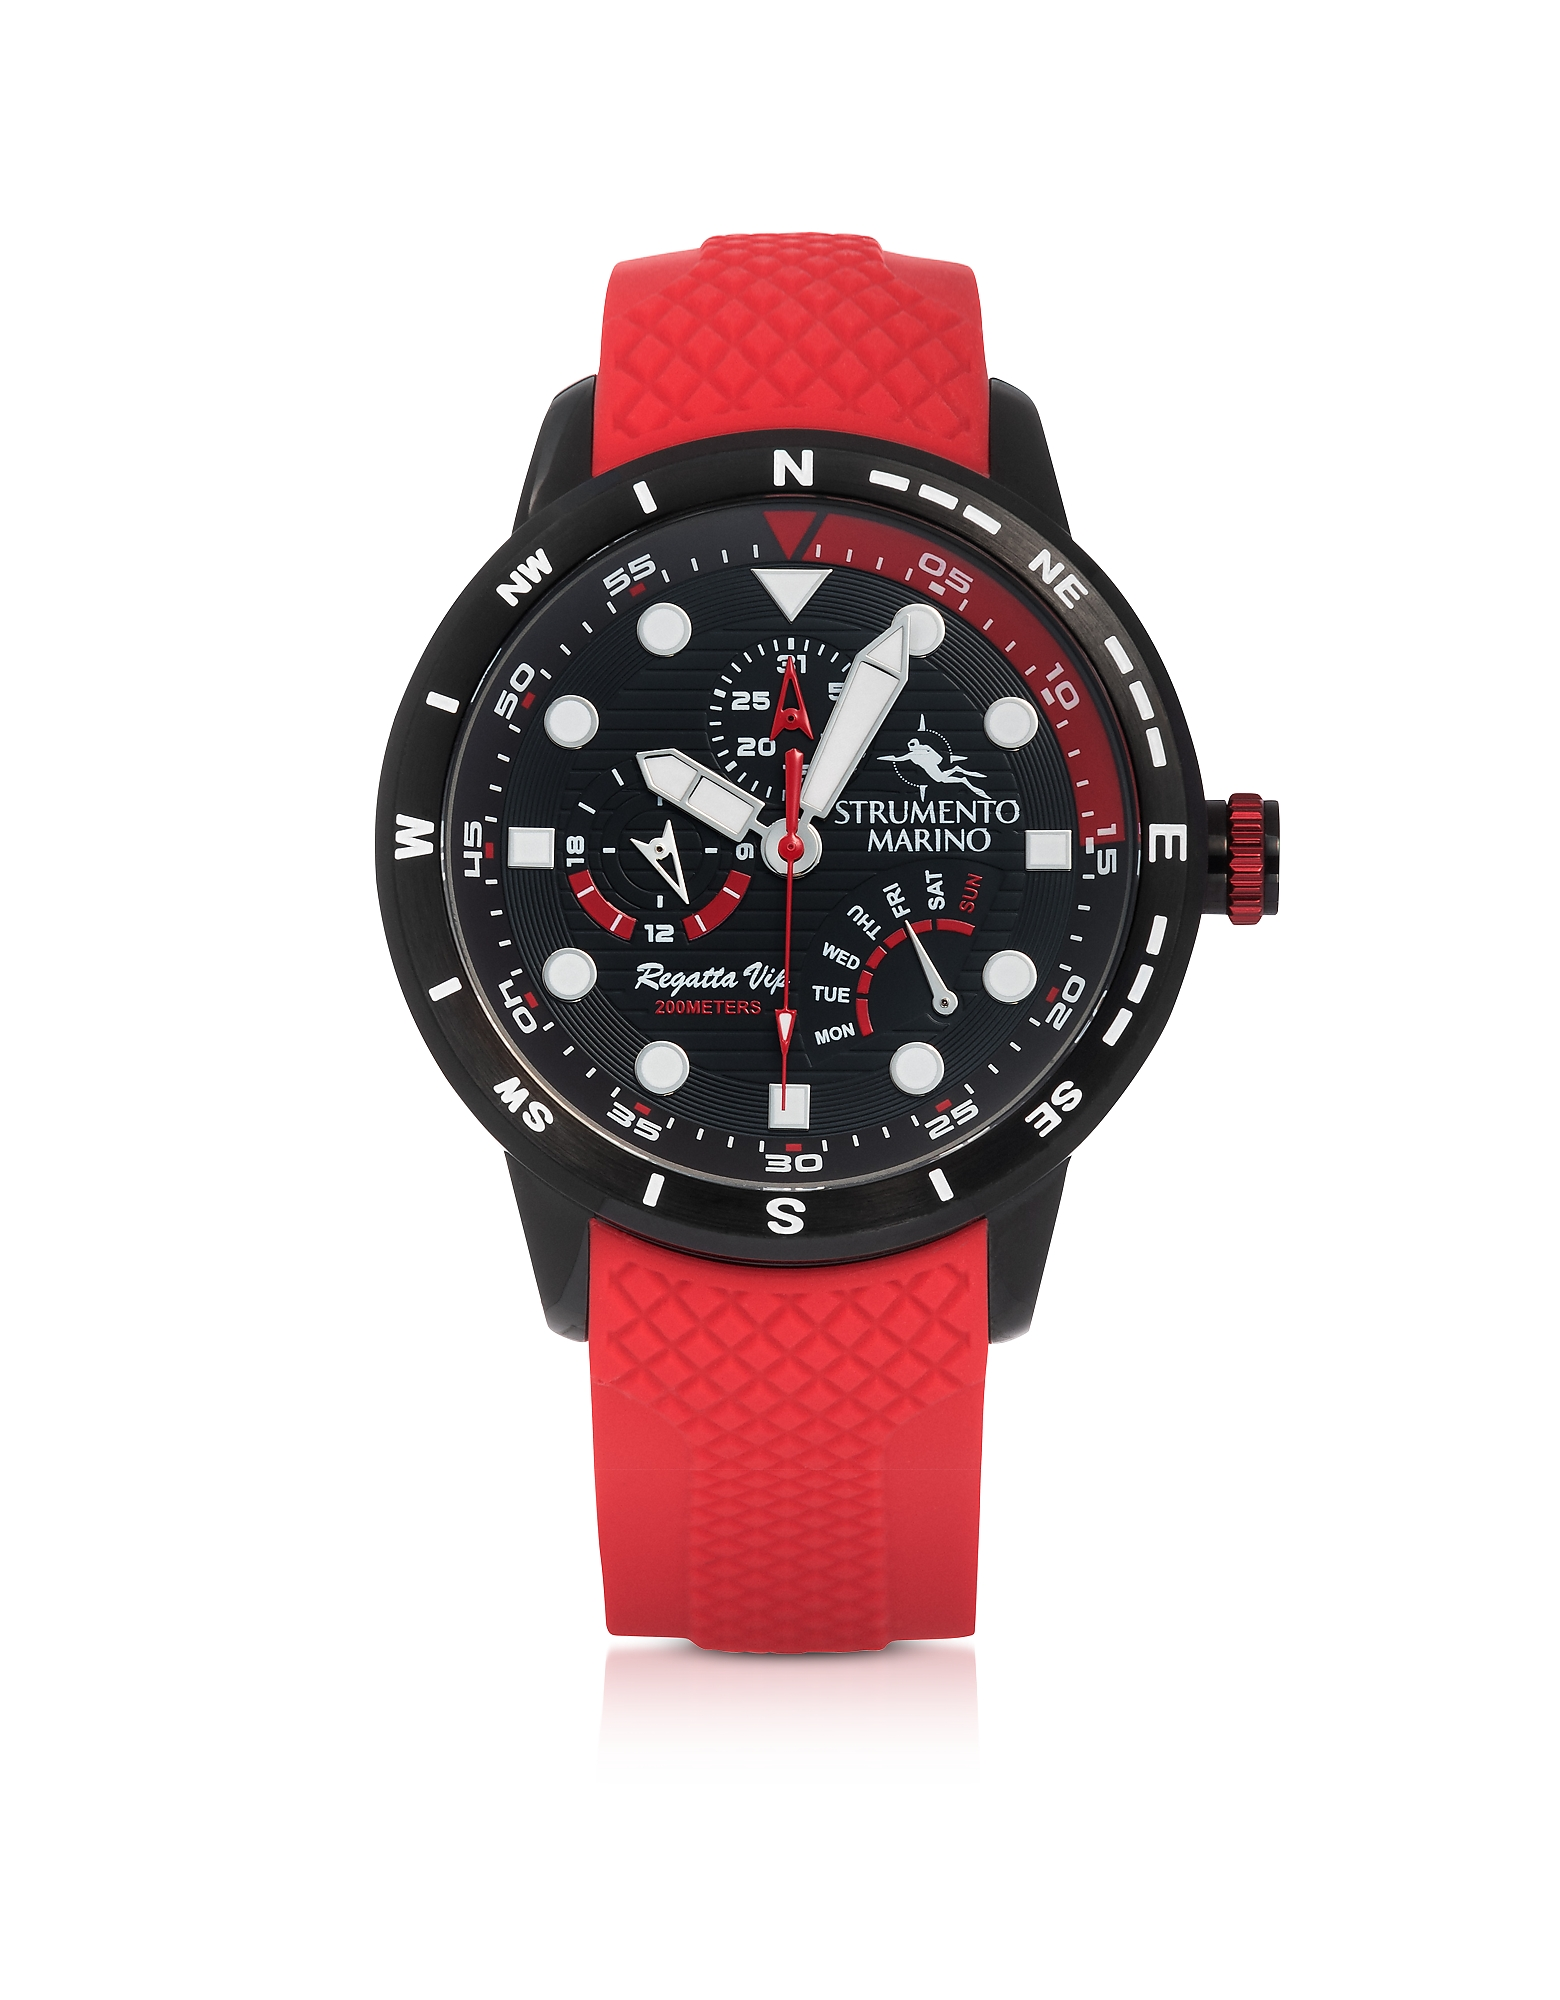 Regatta Vip Black Stainless Steel Men's Chronograph Watch w/Red Silicone Band